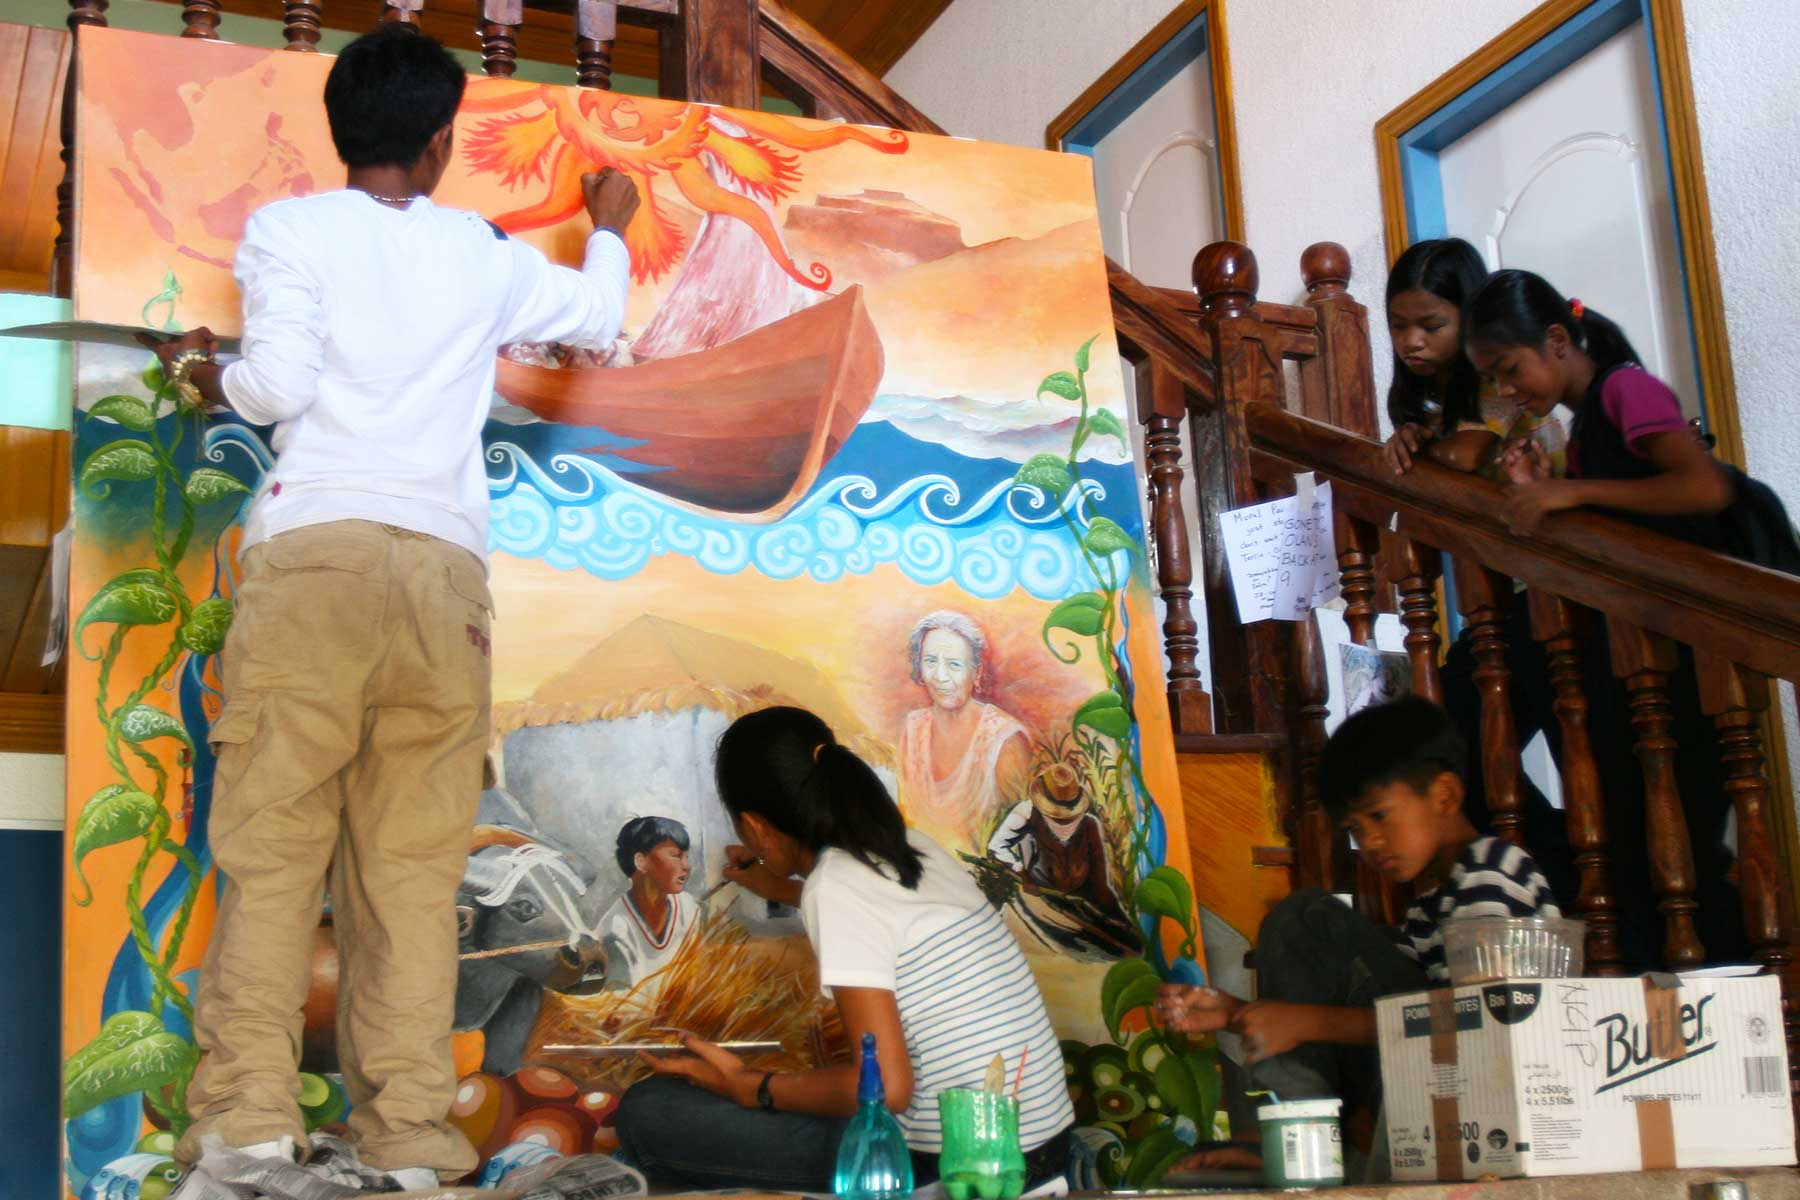 Batanes Islands Photo Journal - IIvatan Youth - Cultural Painting - Batanes Philippines - Austronesian Story - Steven Andrew Martin